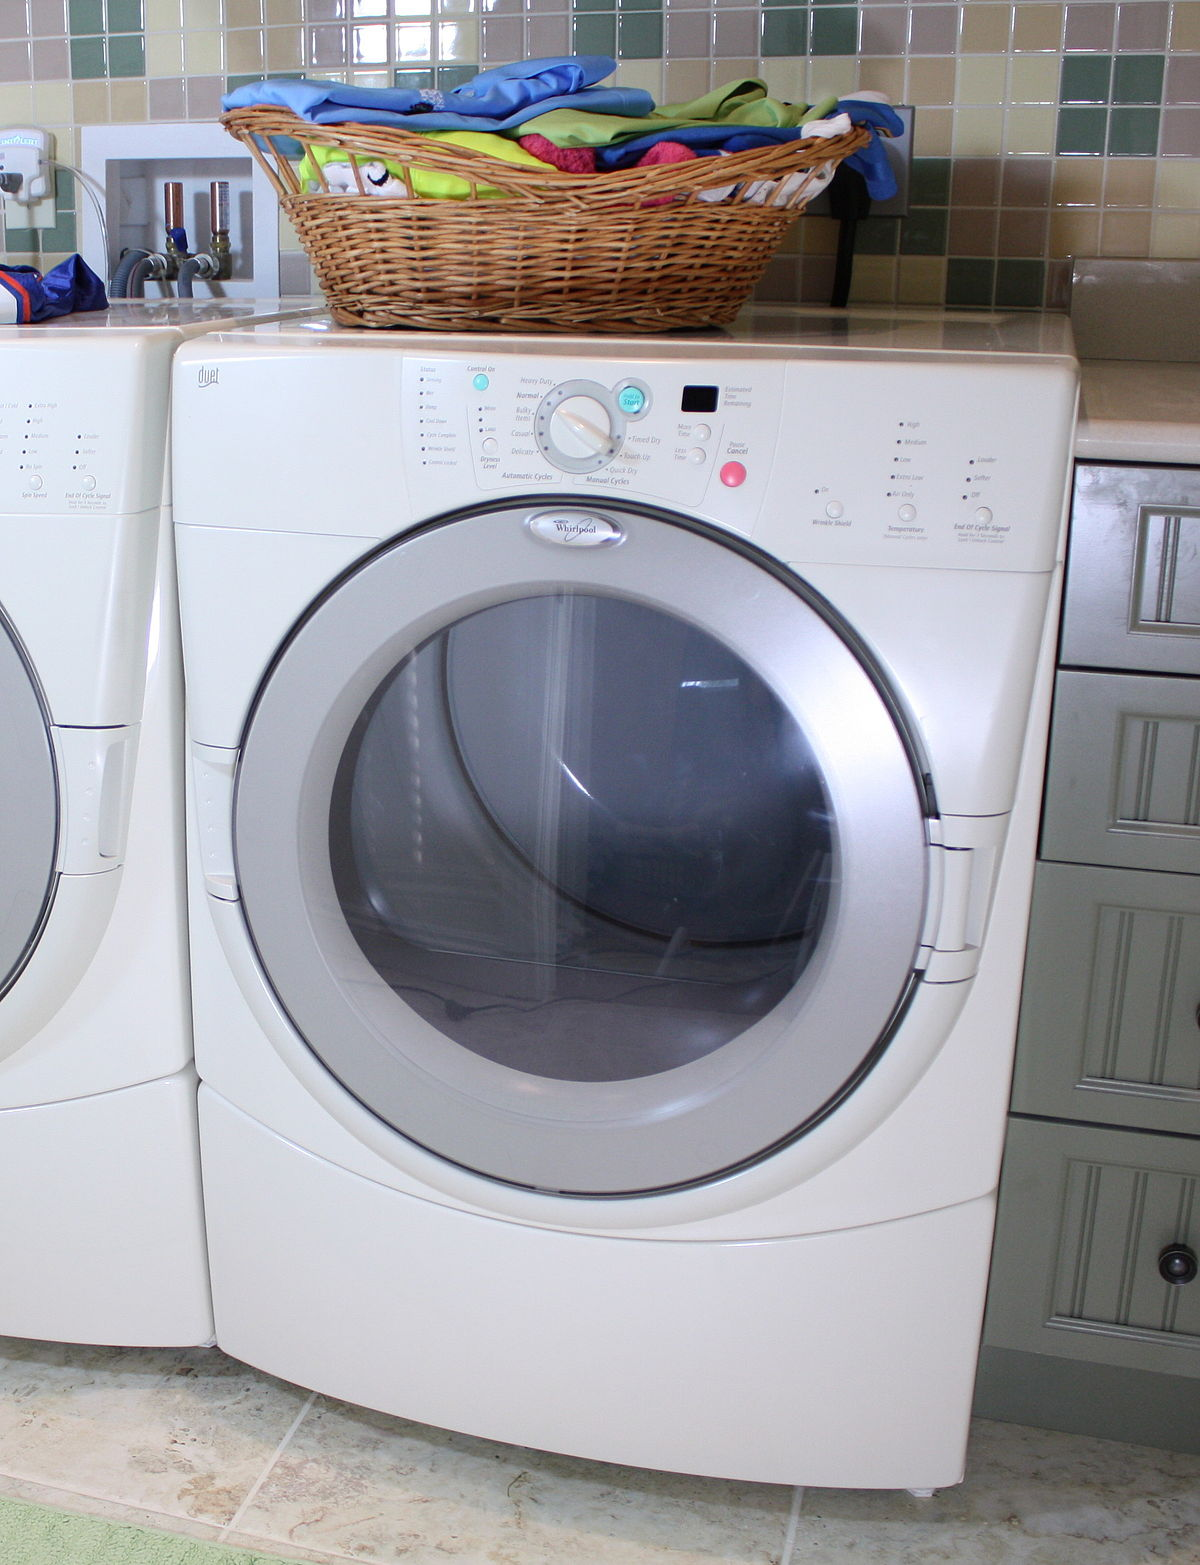 Clothes Drying Machine ~ Clothes dryer wikipedia